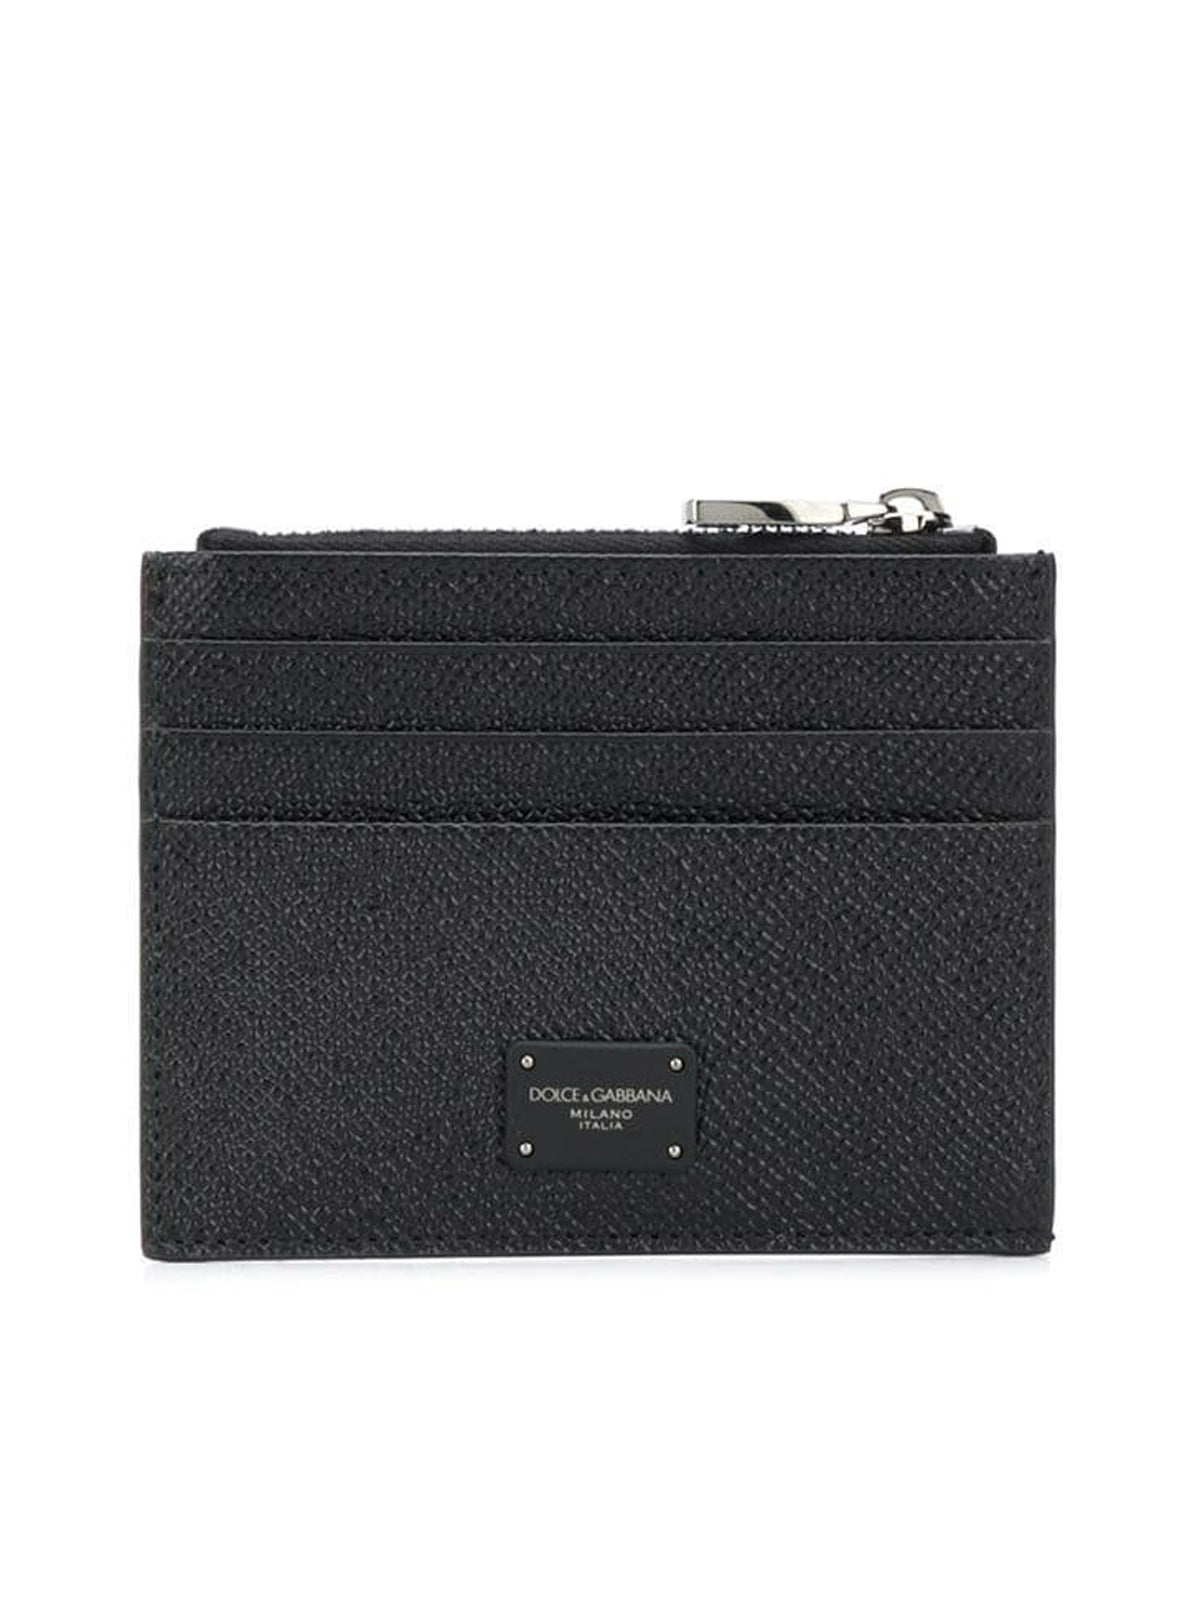 Wallet with pockets